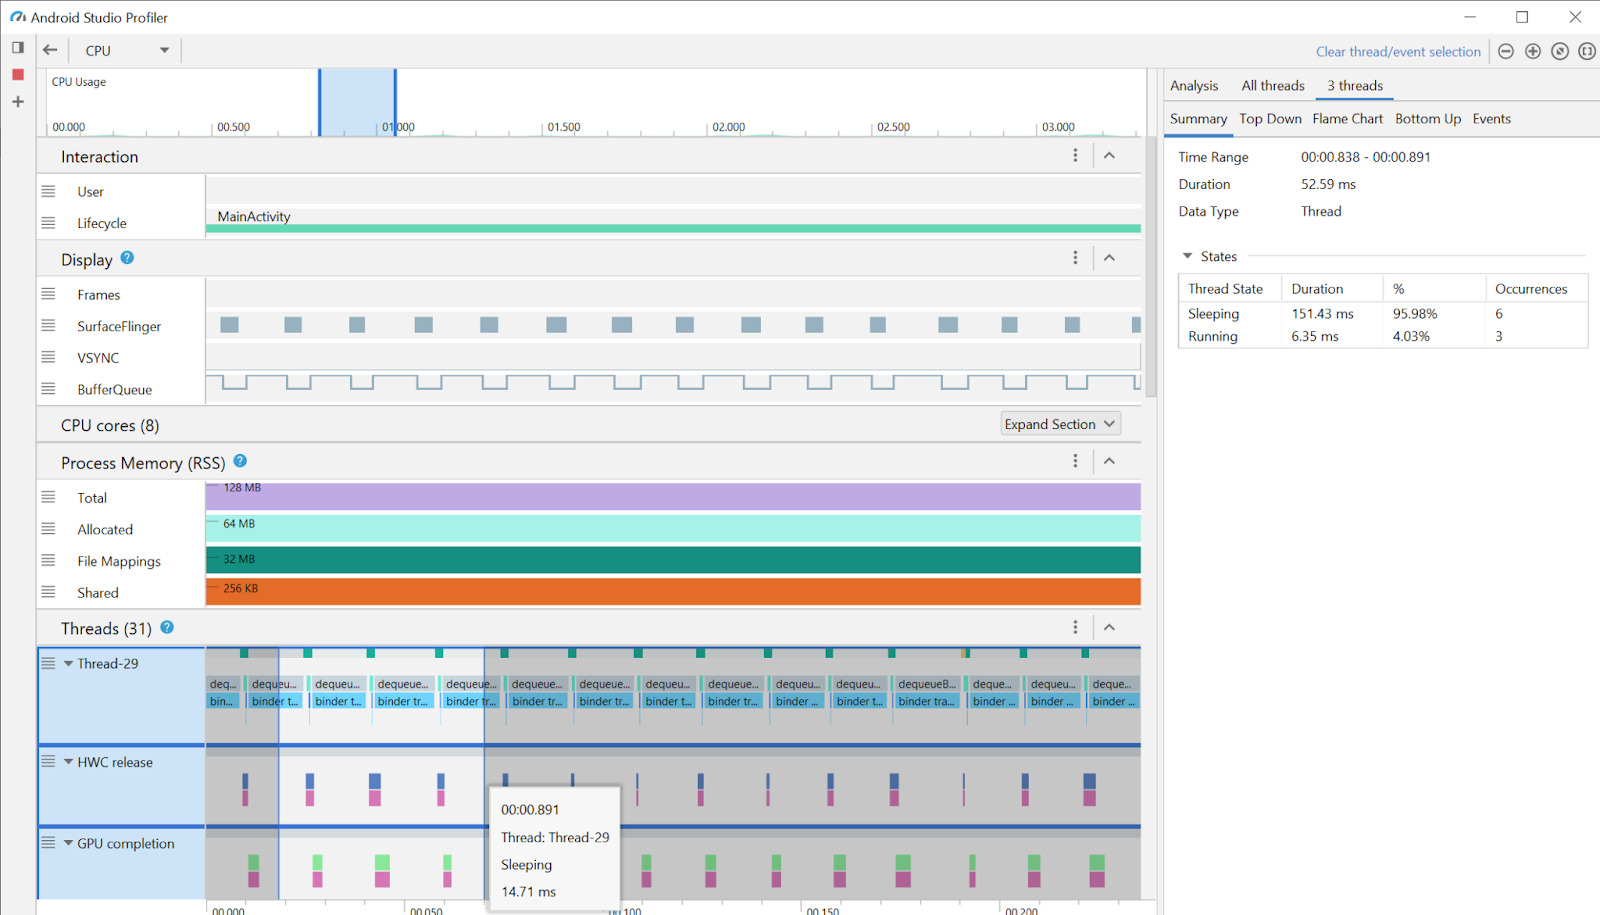 gif demonstrating how AGDE integrates with a standalone version of Android Studio Profilers.